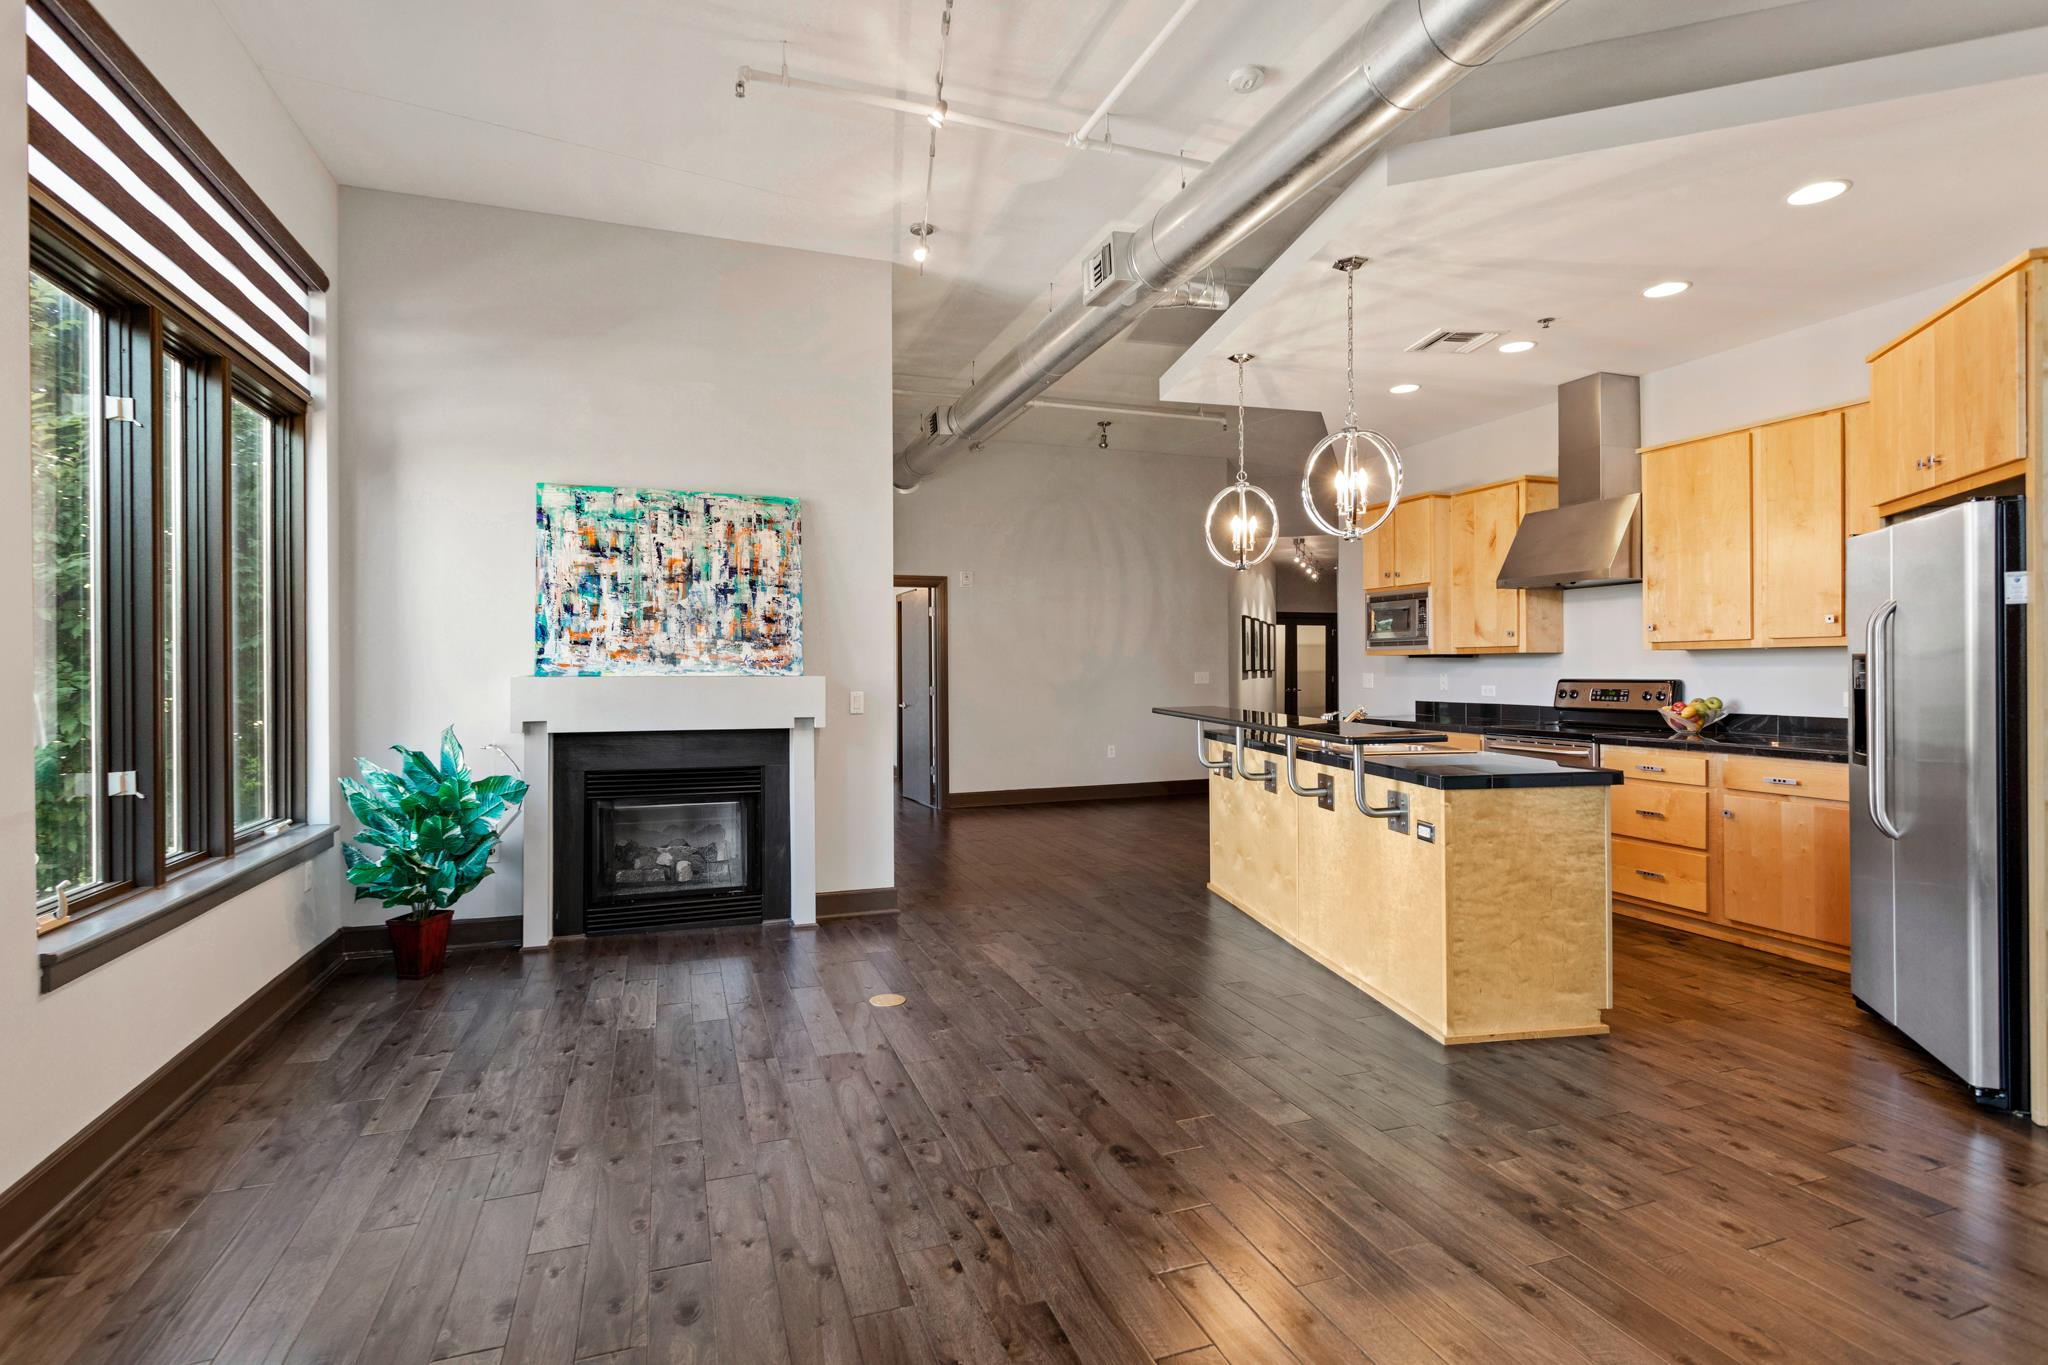 205 31St Ave N Apt 102, Nashville - Midtown in Davidson County County, TN 37203 Home for Sale